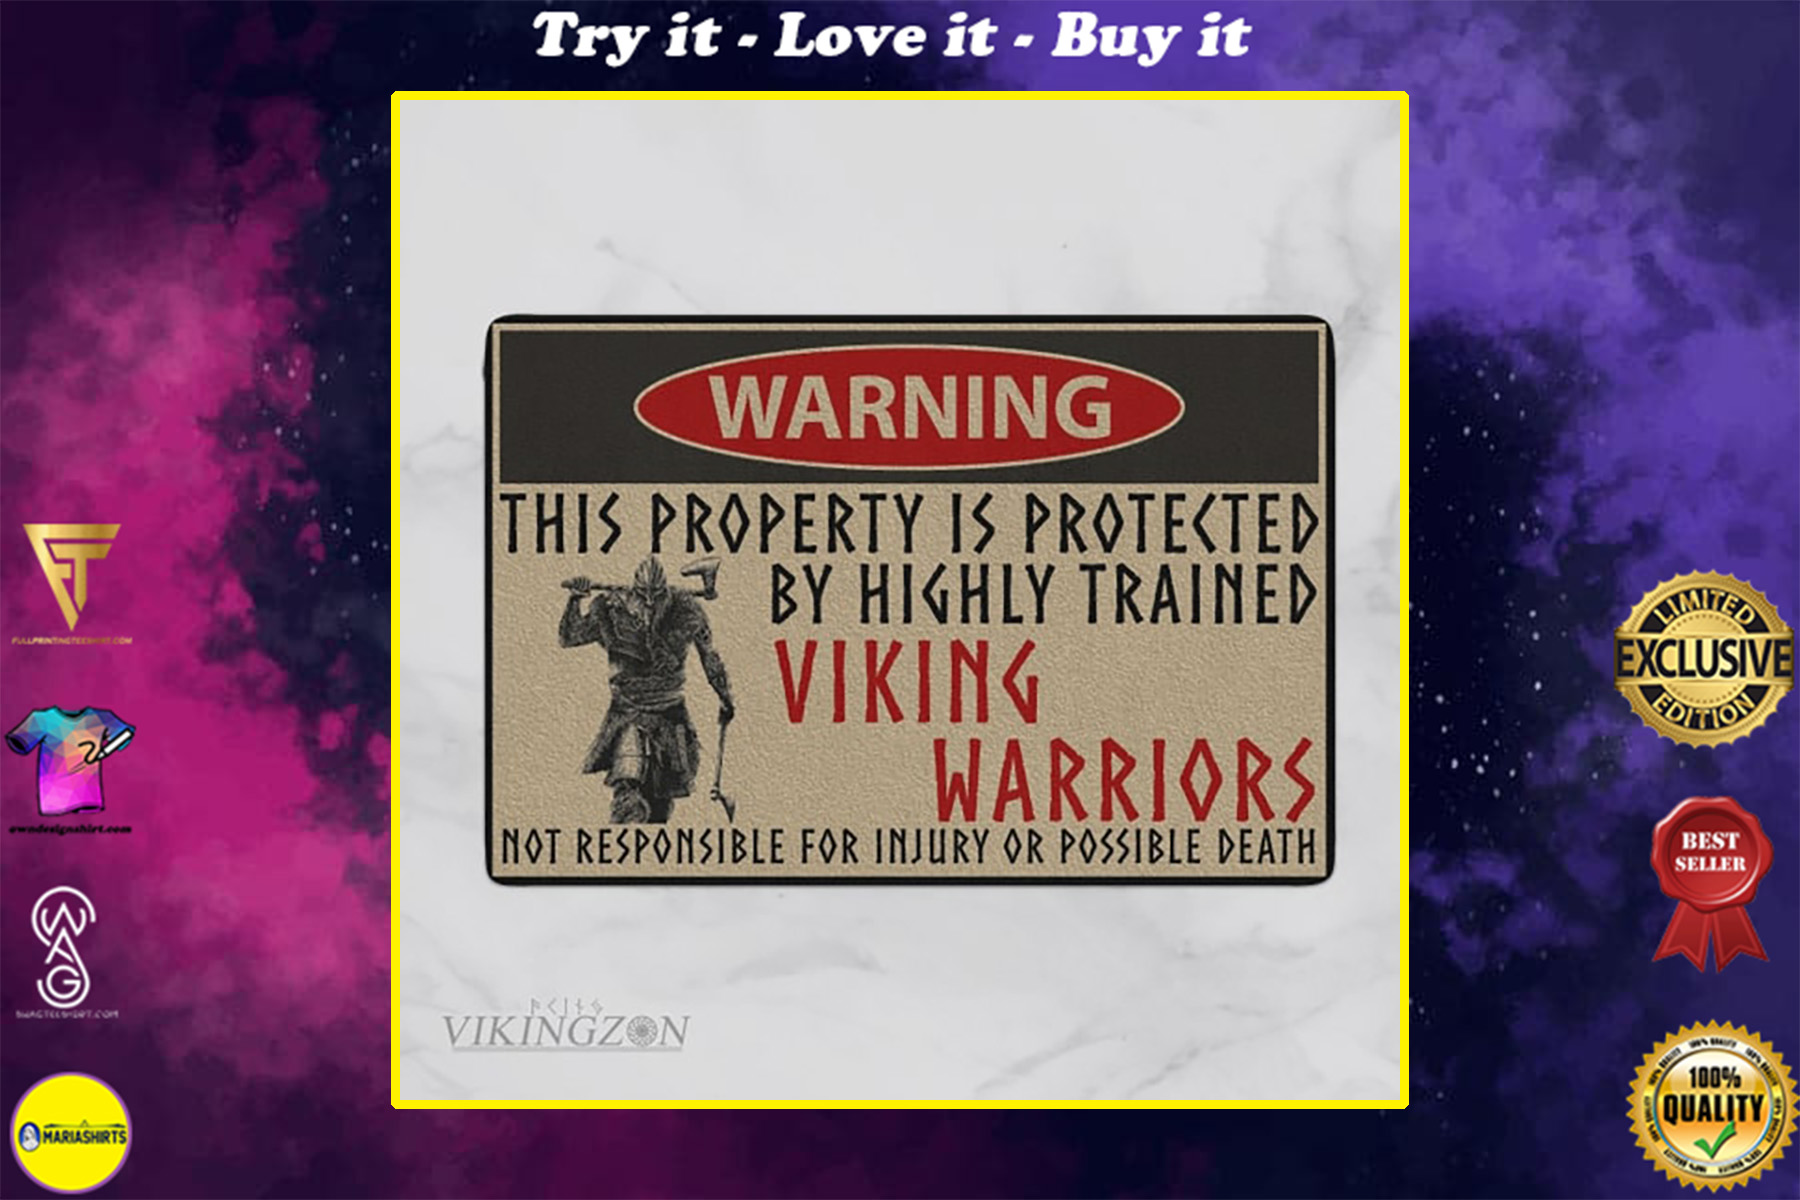 this property is protected by highly trained viking warriors not responsible for injury or possible death doormat